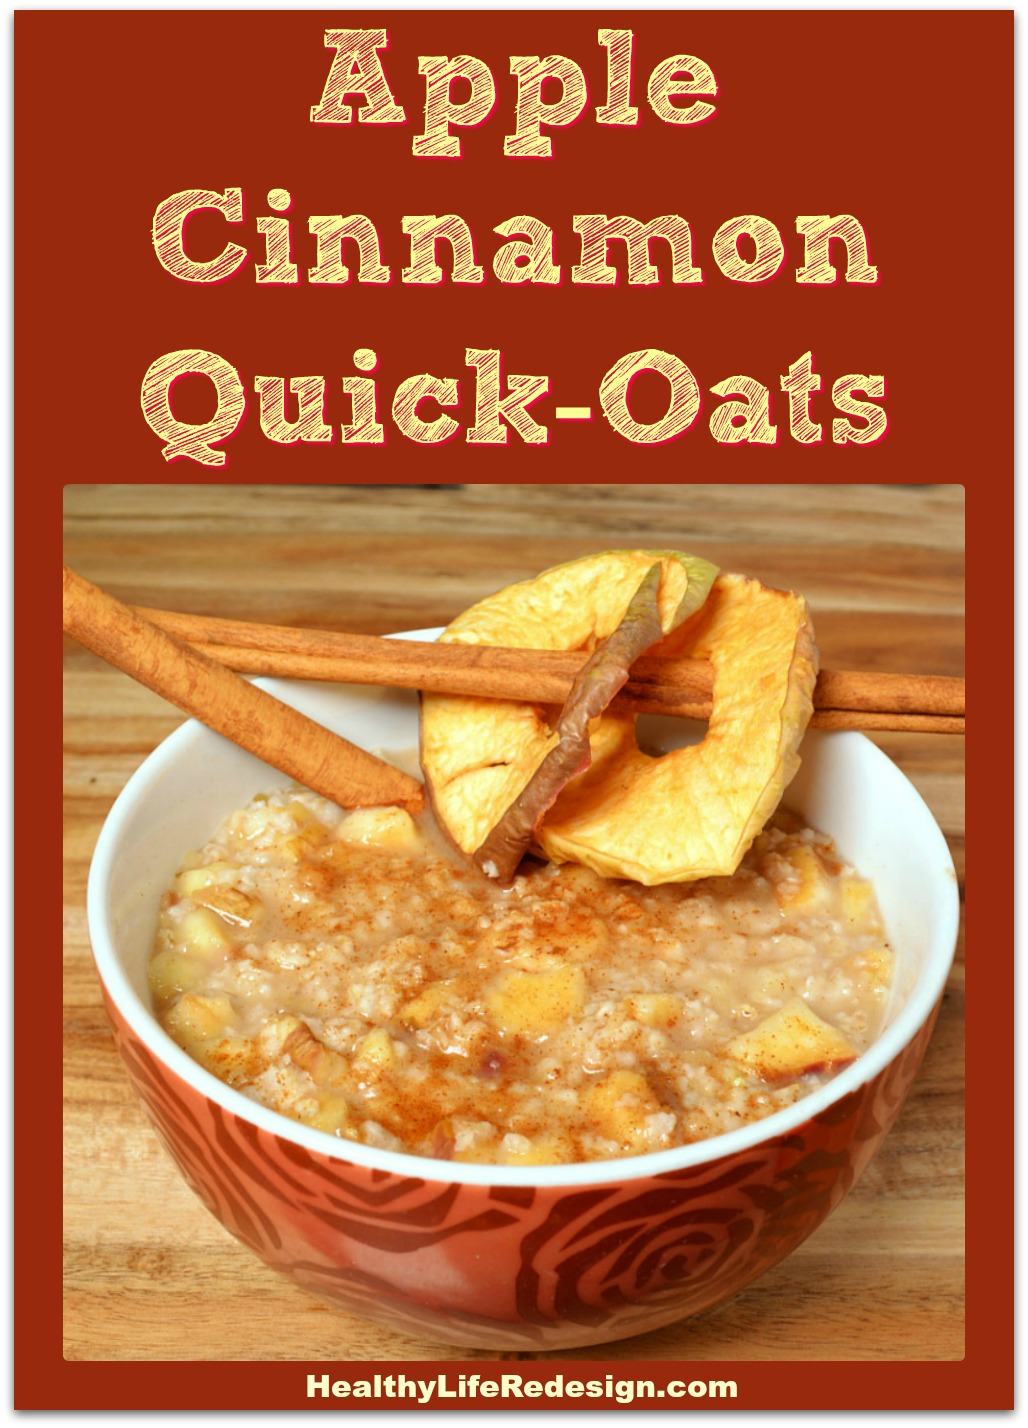 Apple Cinnamon Quick Oats - Take this with you as a healthy breakfast for hotel travel, camping or road trips! Also makes a quick and delicious breakfast at home. HealthyLifeRedesign.com